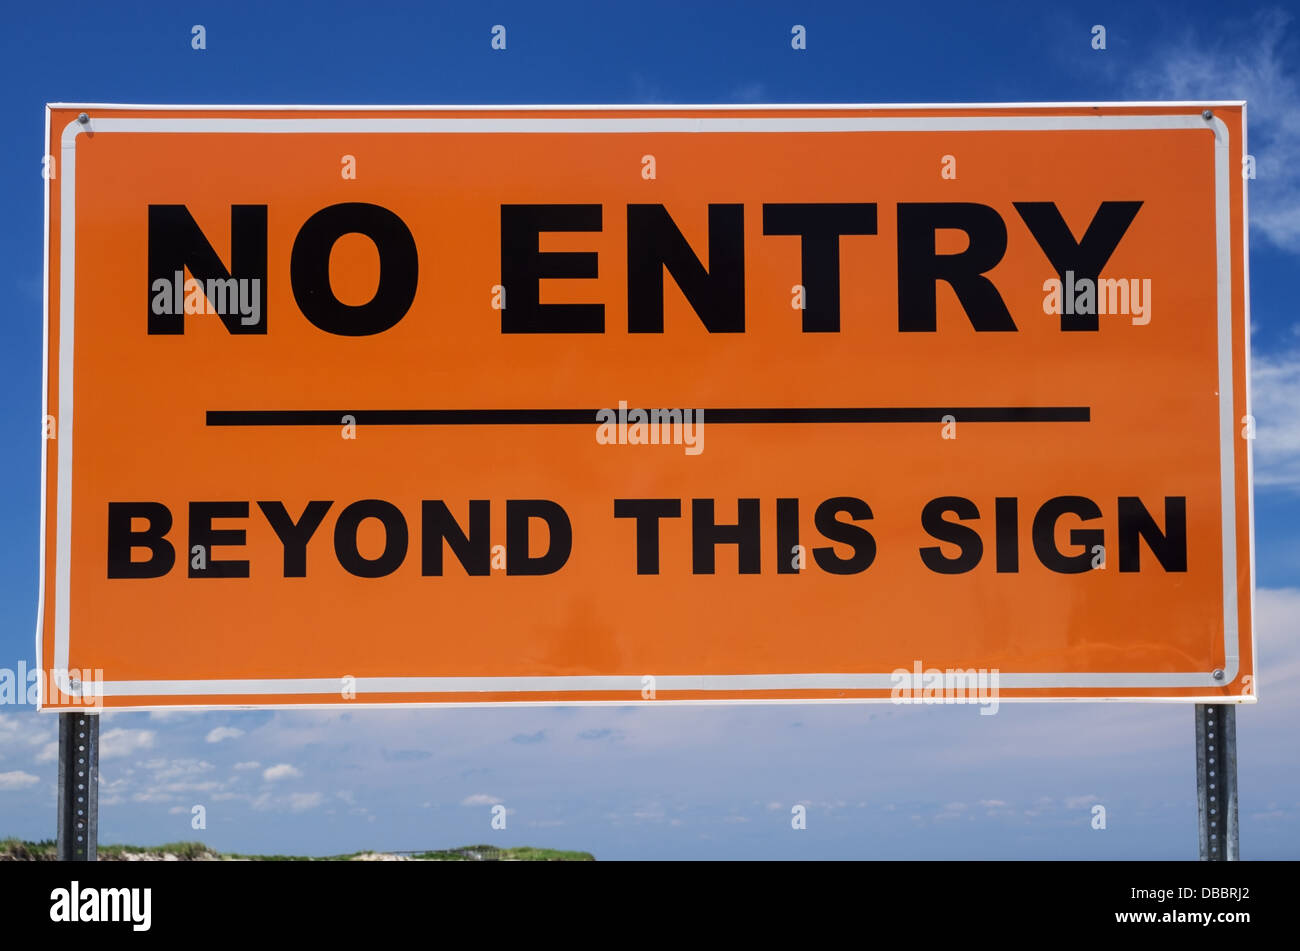 orange and black no entry beyond this sign sign - Stock Image